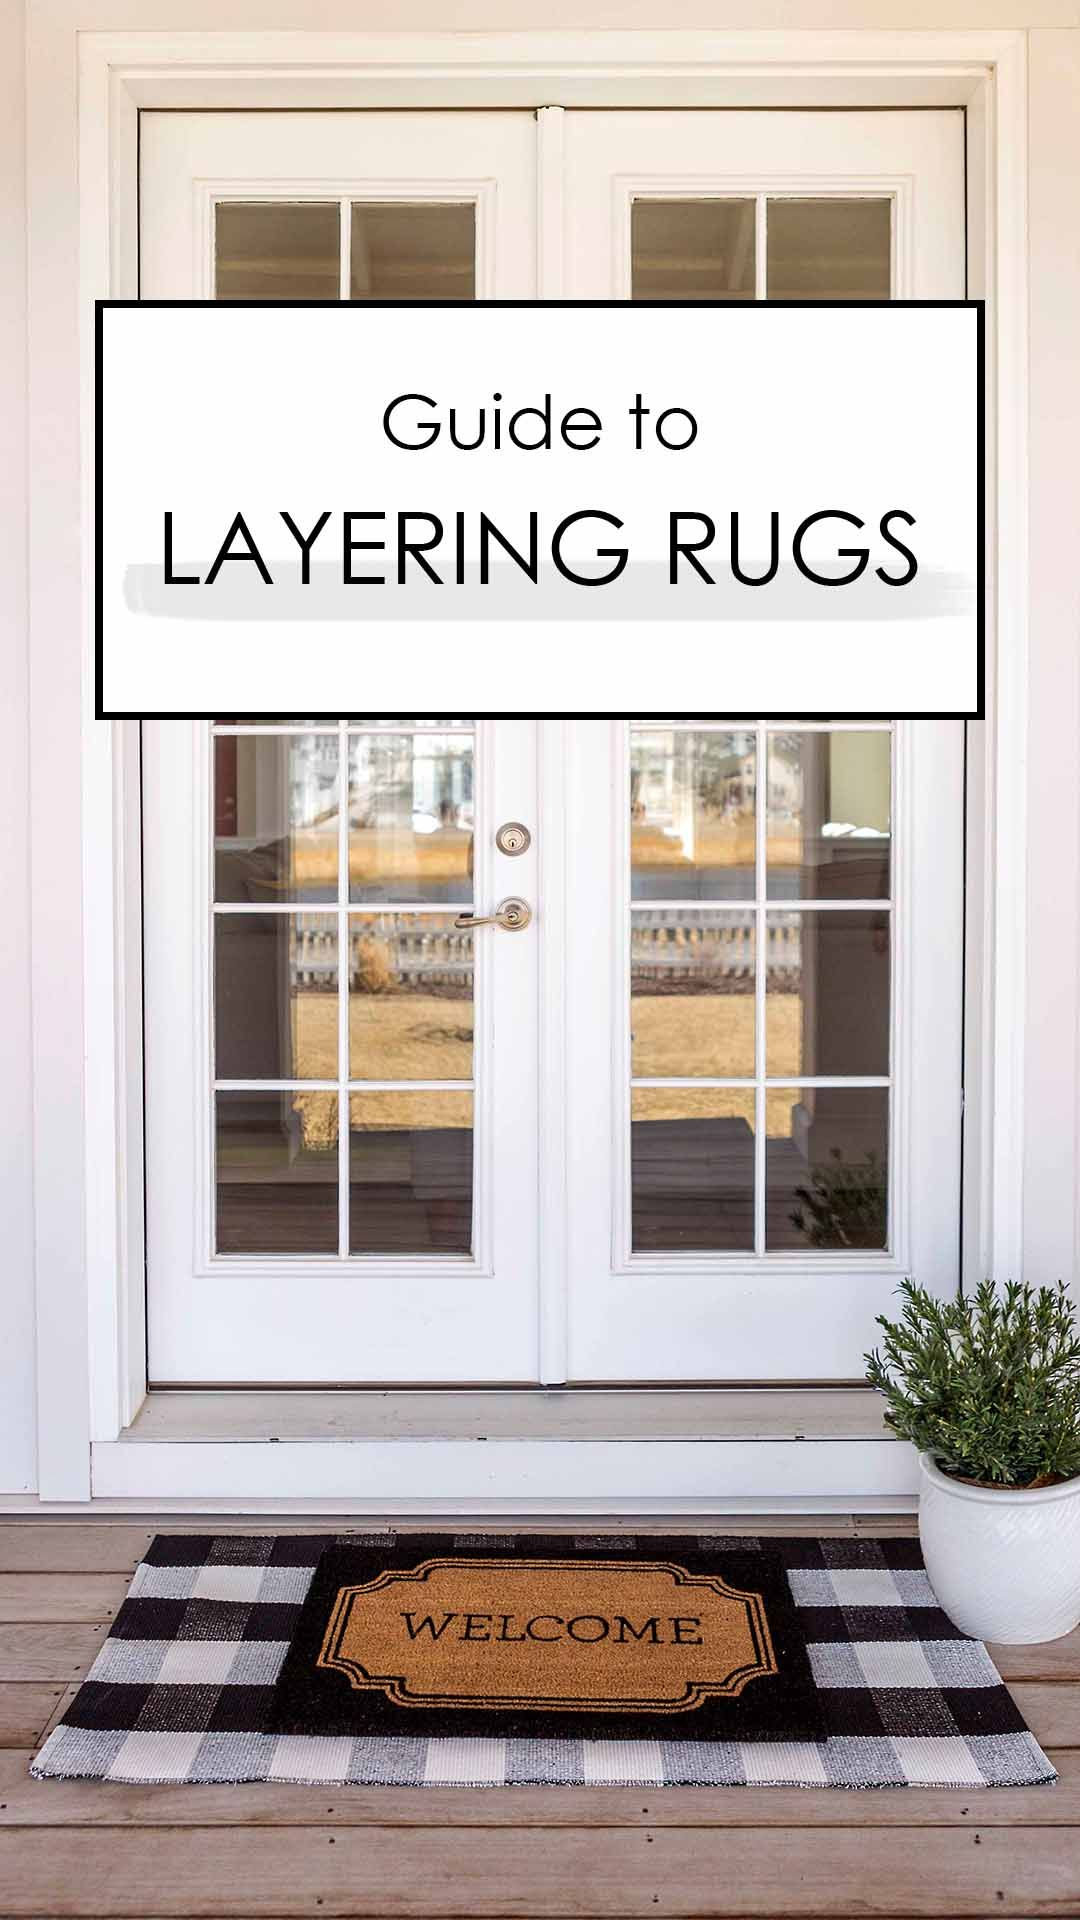 Guide To Layering Rugs And Door Mats Front Door Rugs Front Porch Mat Front Porch Decorating